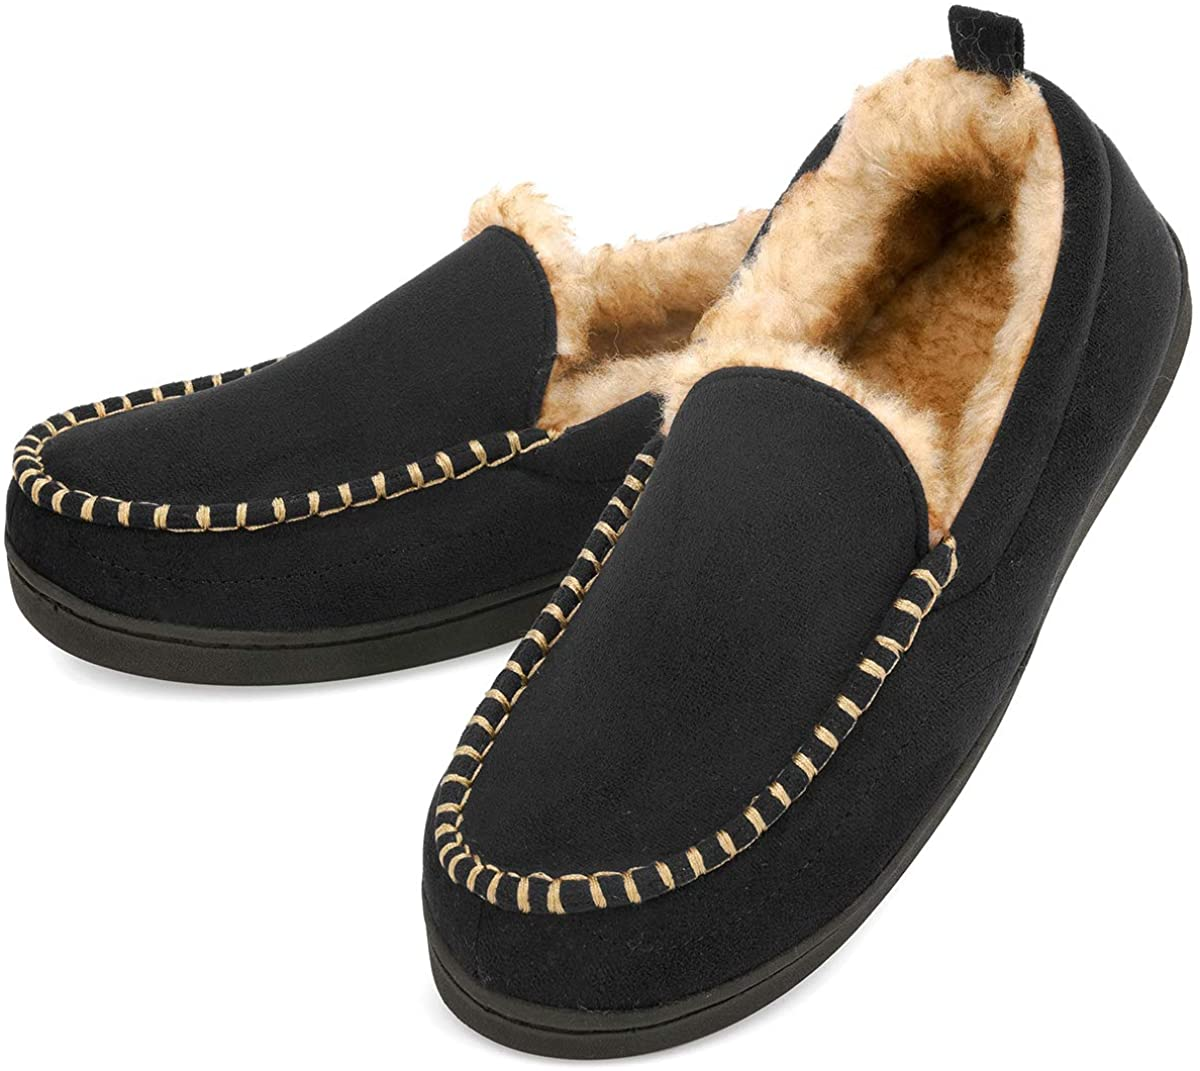 Men's Moccasin Slippers Fuzzy House Shoes Fluffy Fur Home Warm Memory Foam Indoor Outdoor